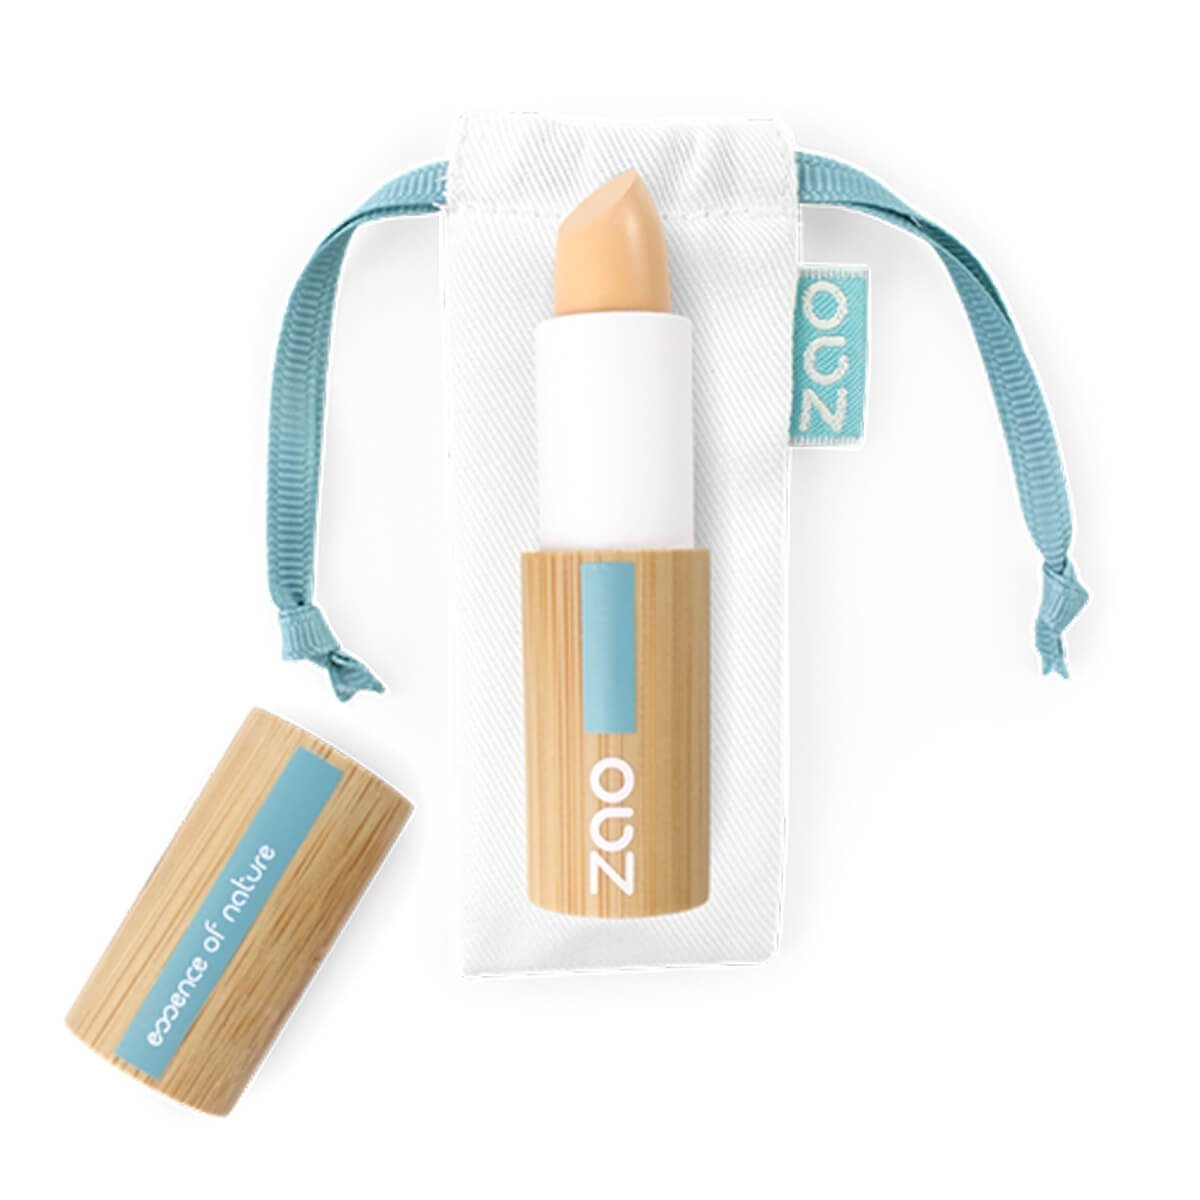 zao concealer stick refillable 492